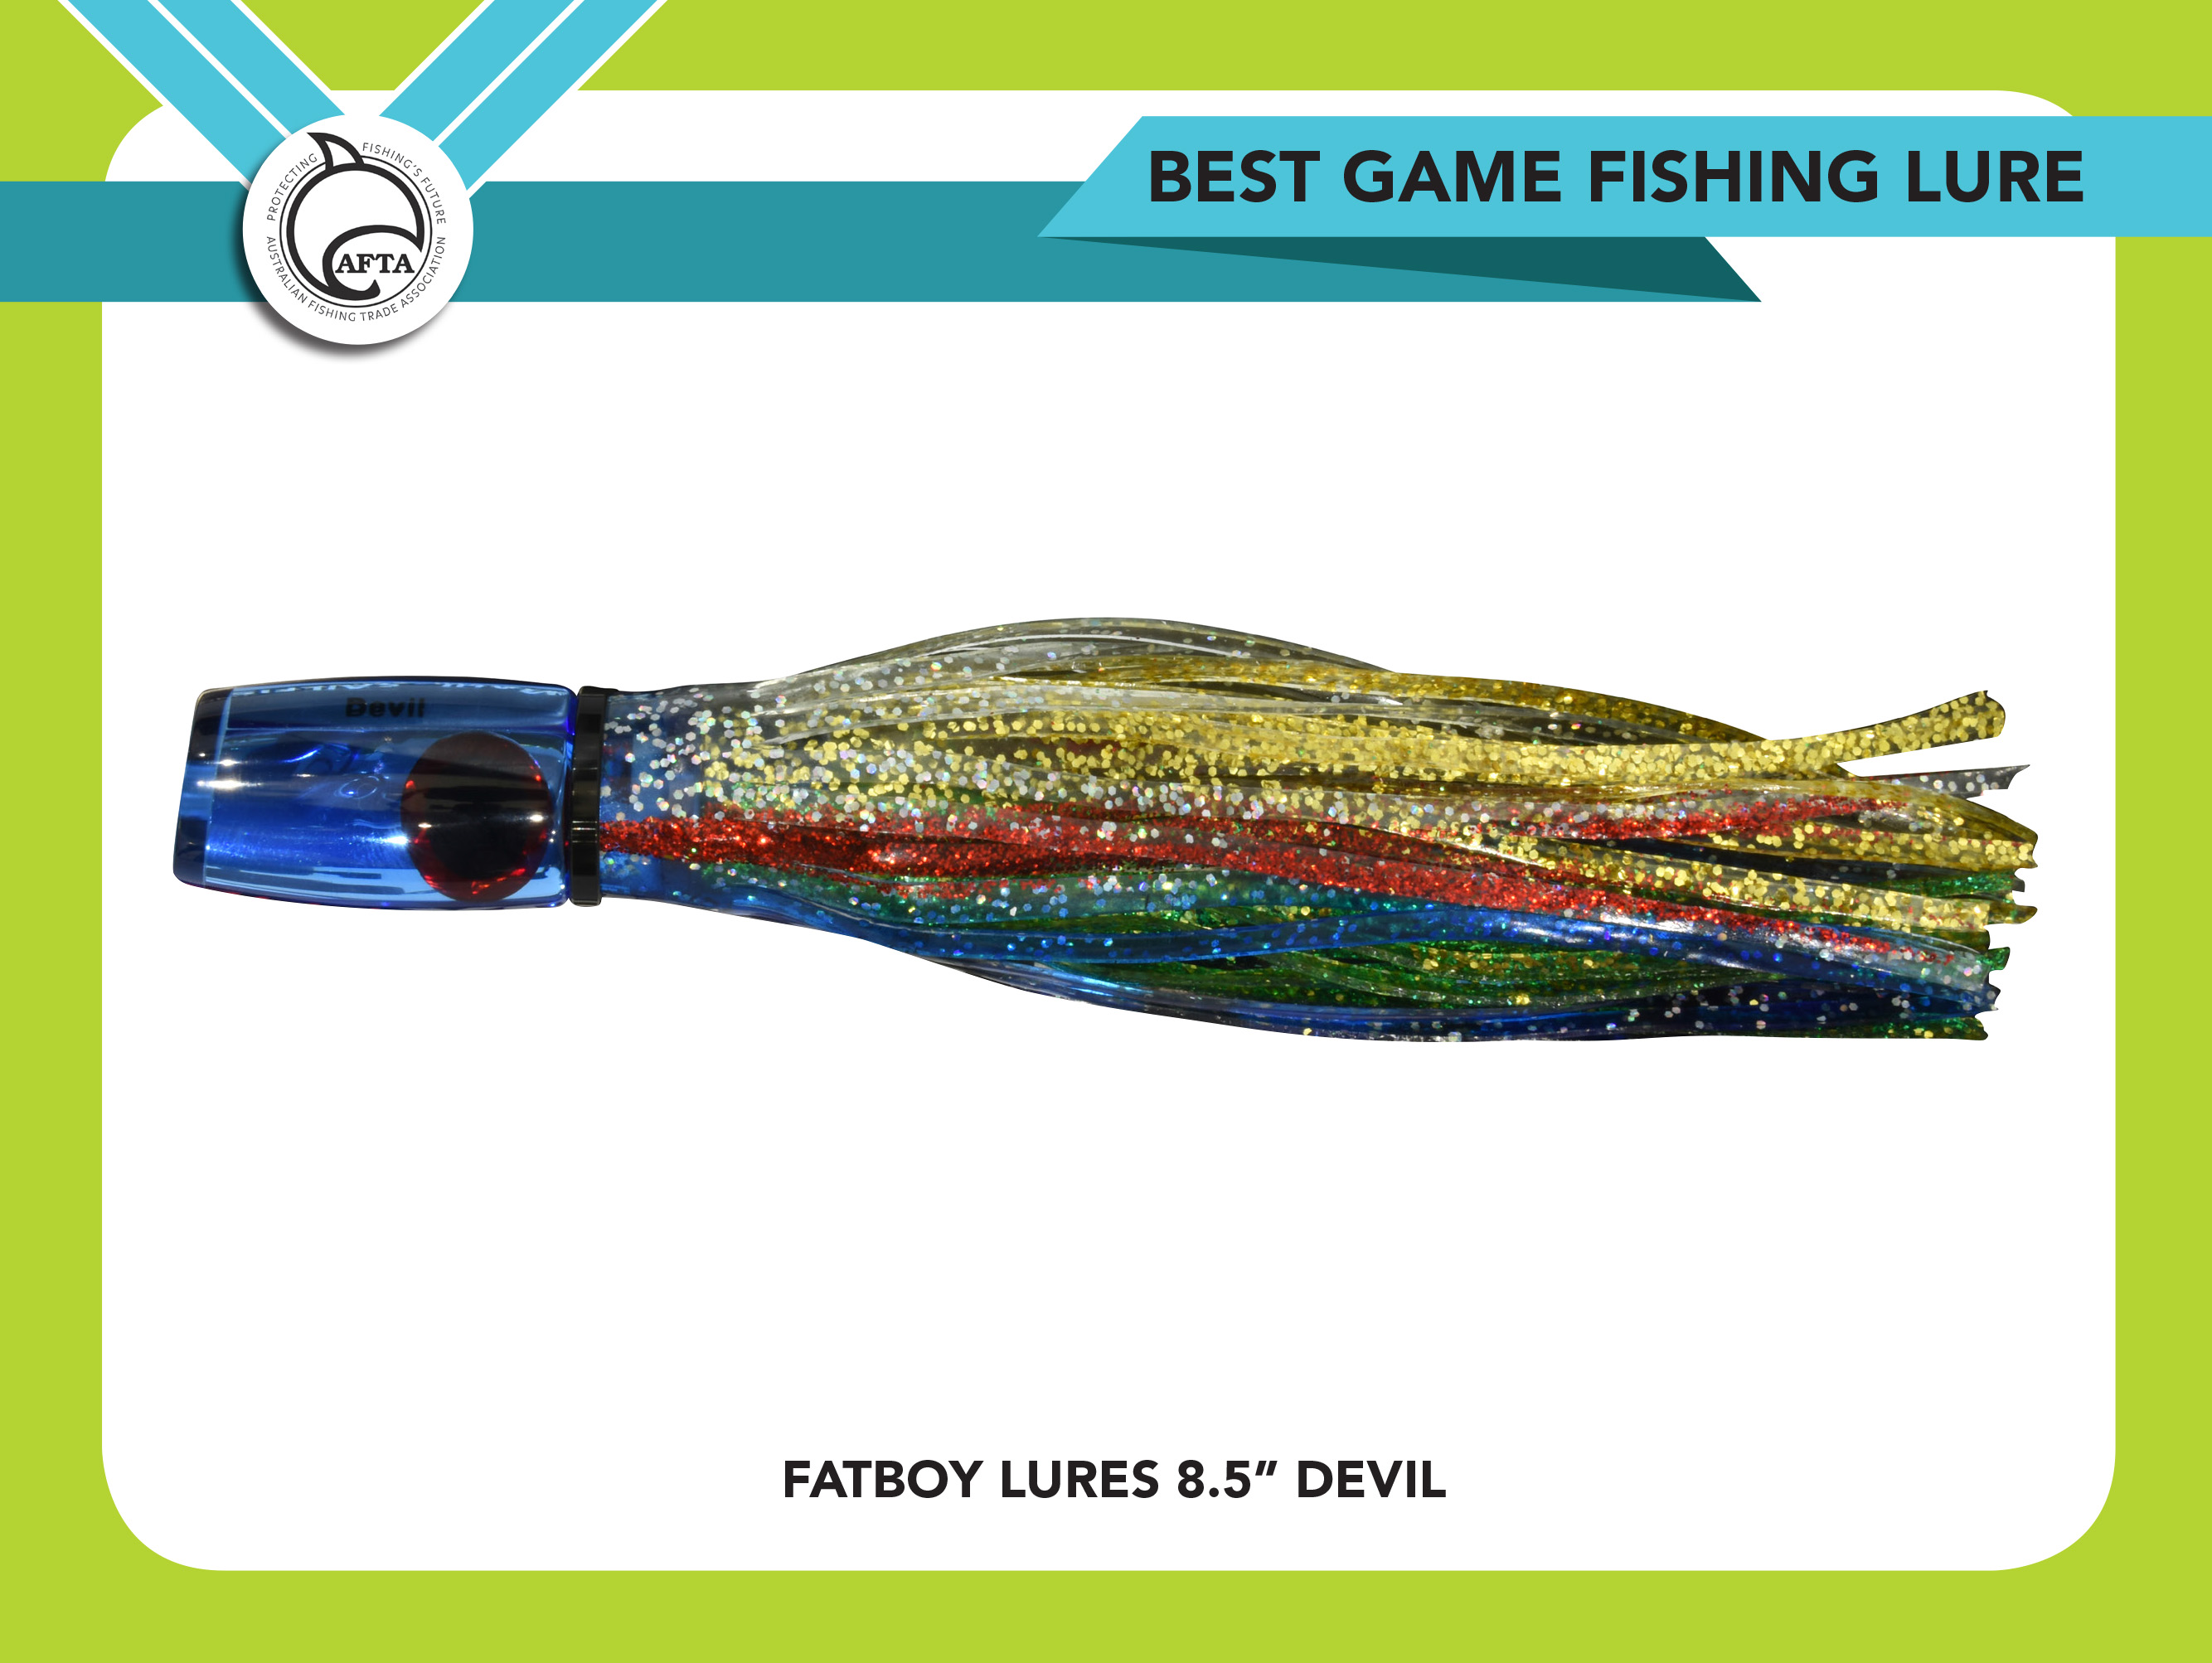 BestGameFishingLure